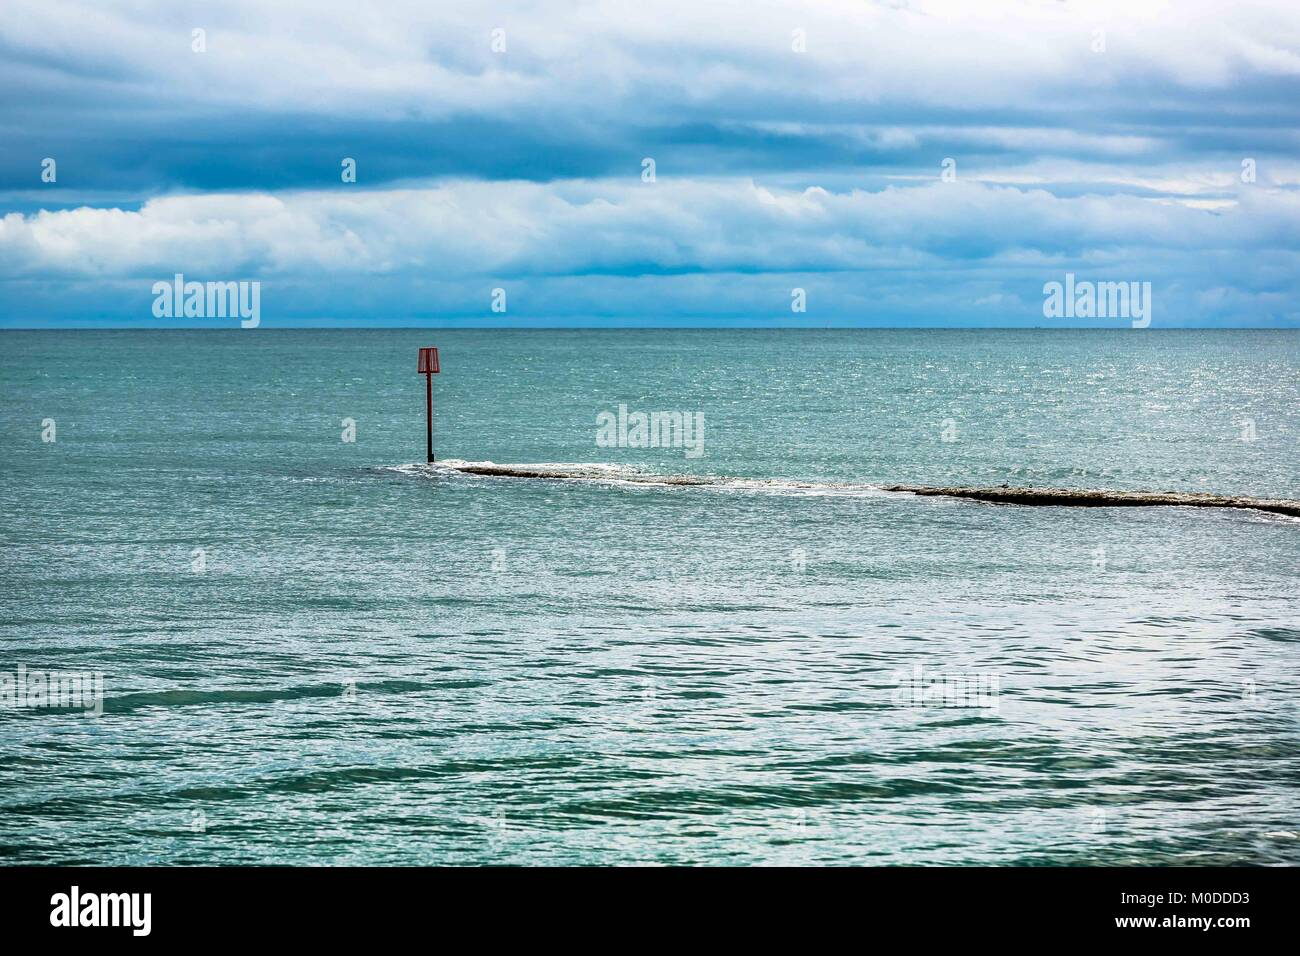 A concrete jetty stretching out to sea n the South Devon coast of England. - Stock Image